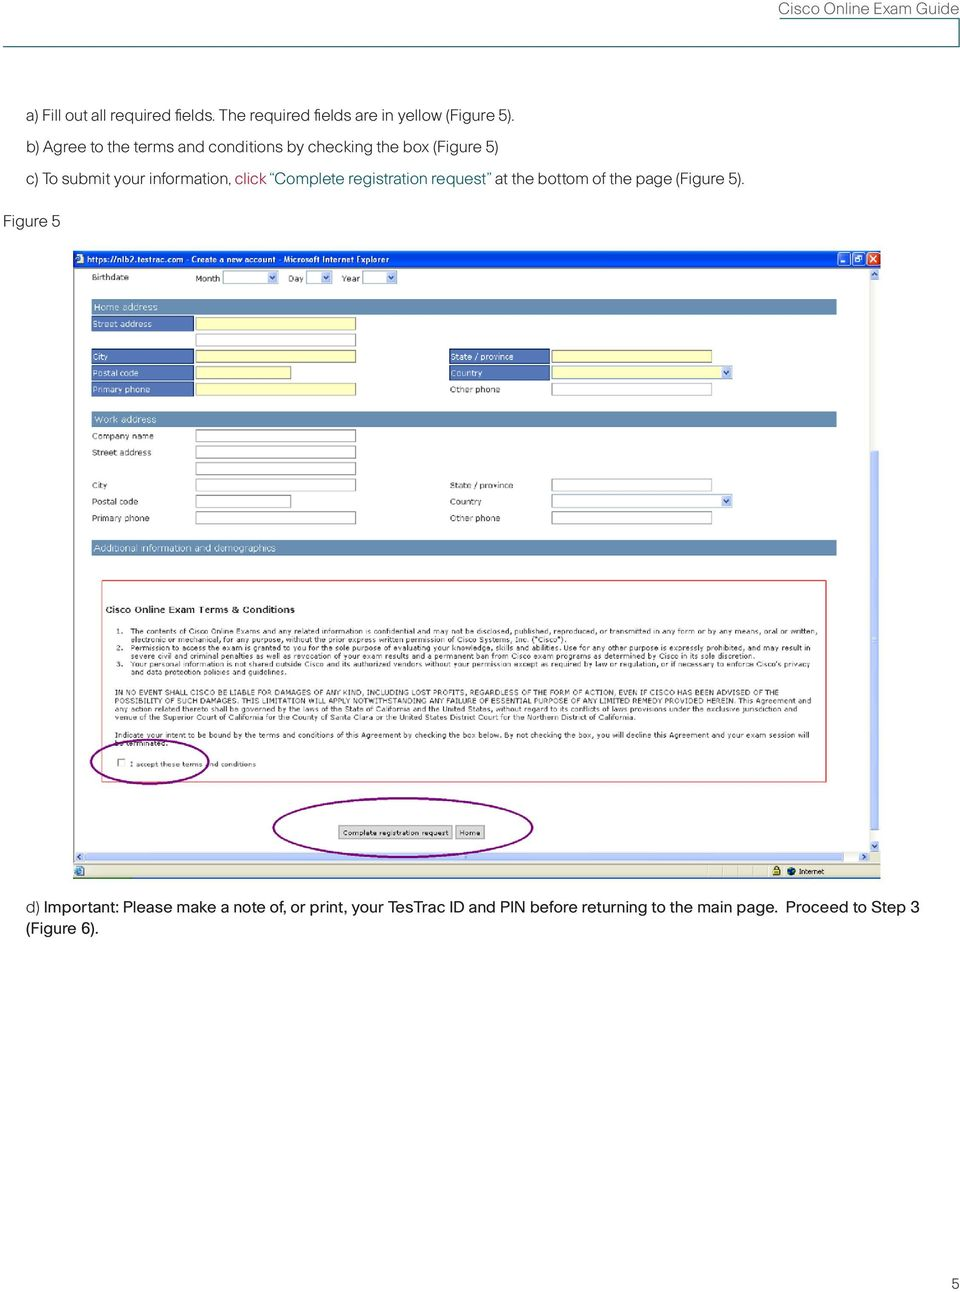 click Complete registration request at the bottom of the page (Figure 5).